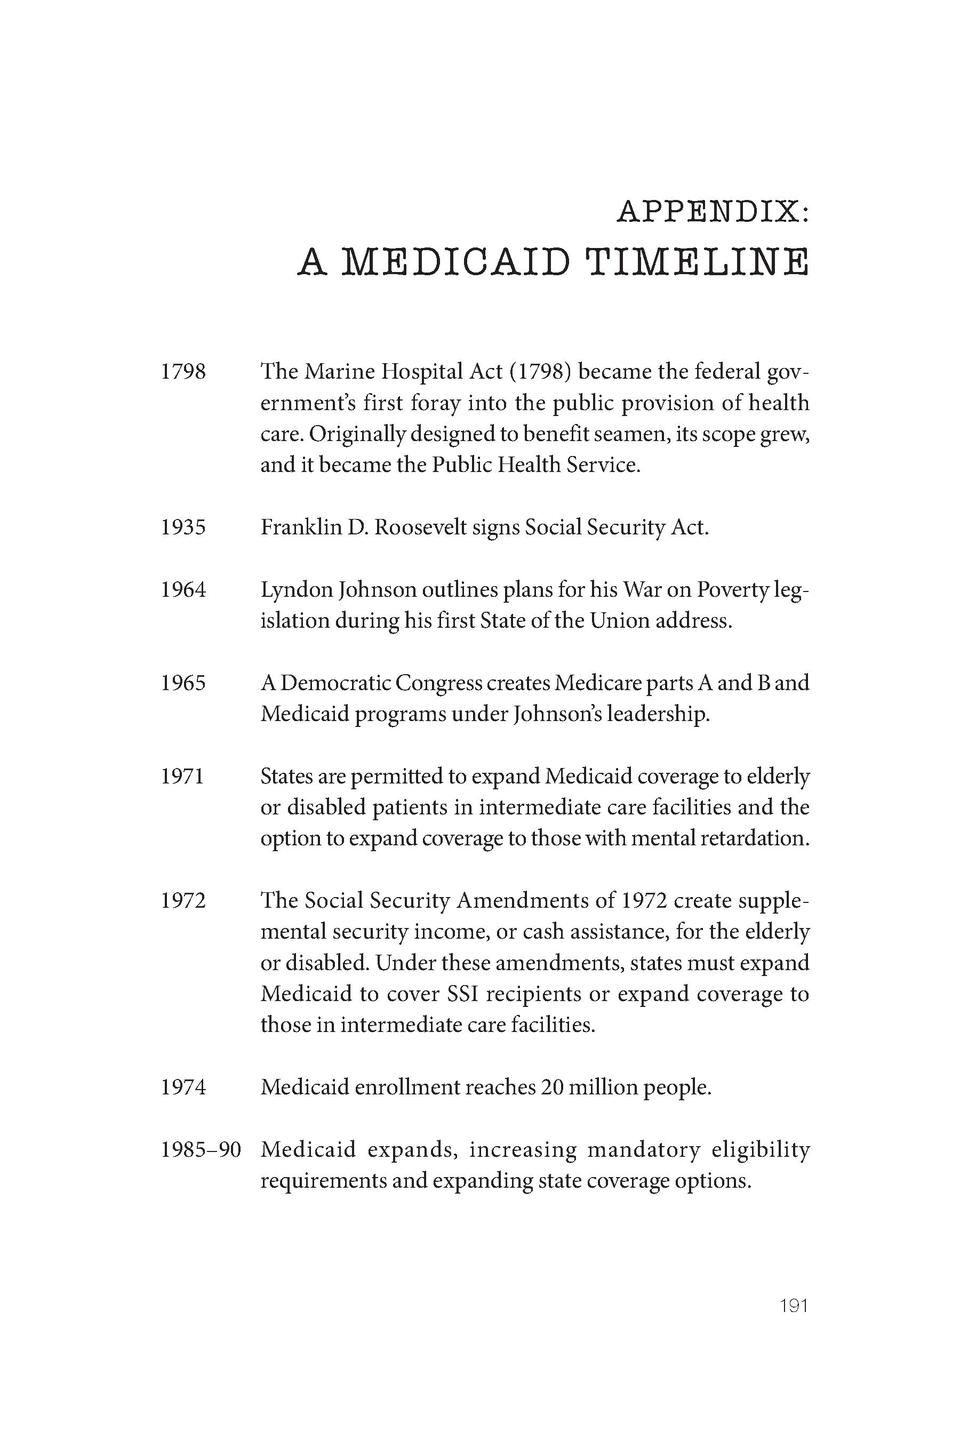 APPENDIX   A MEDICAID TIMELINE 1798   The Marine Hospital Act  1798  became the federal government   s first foray into th...